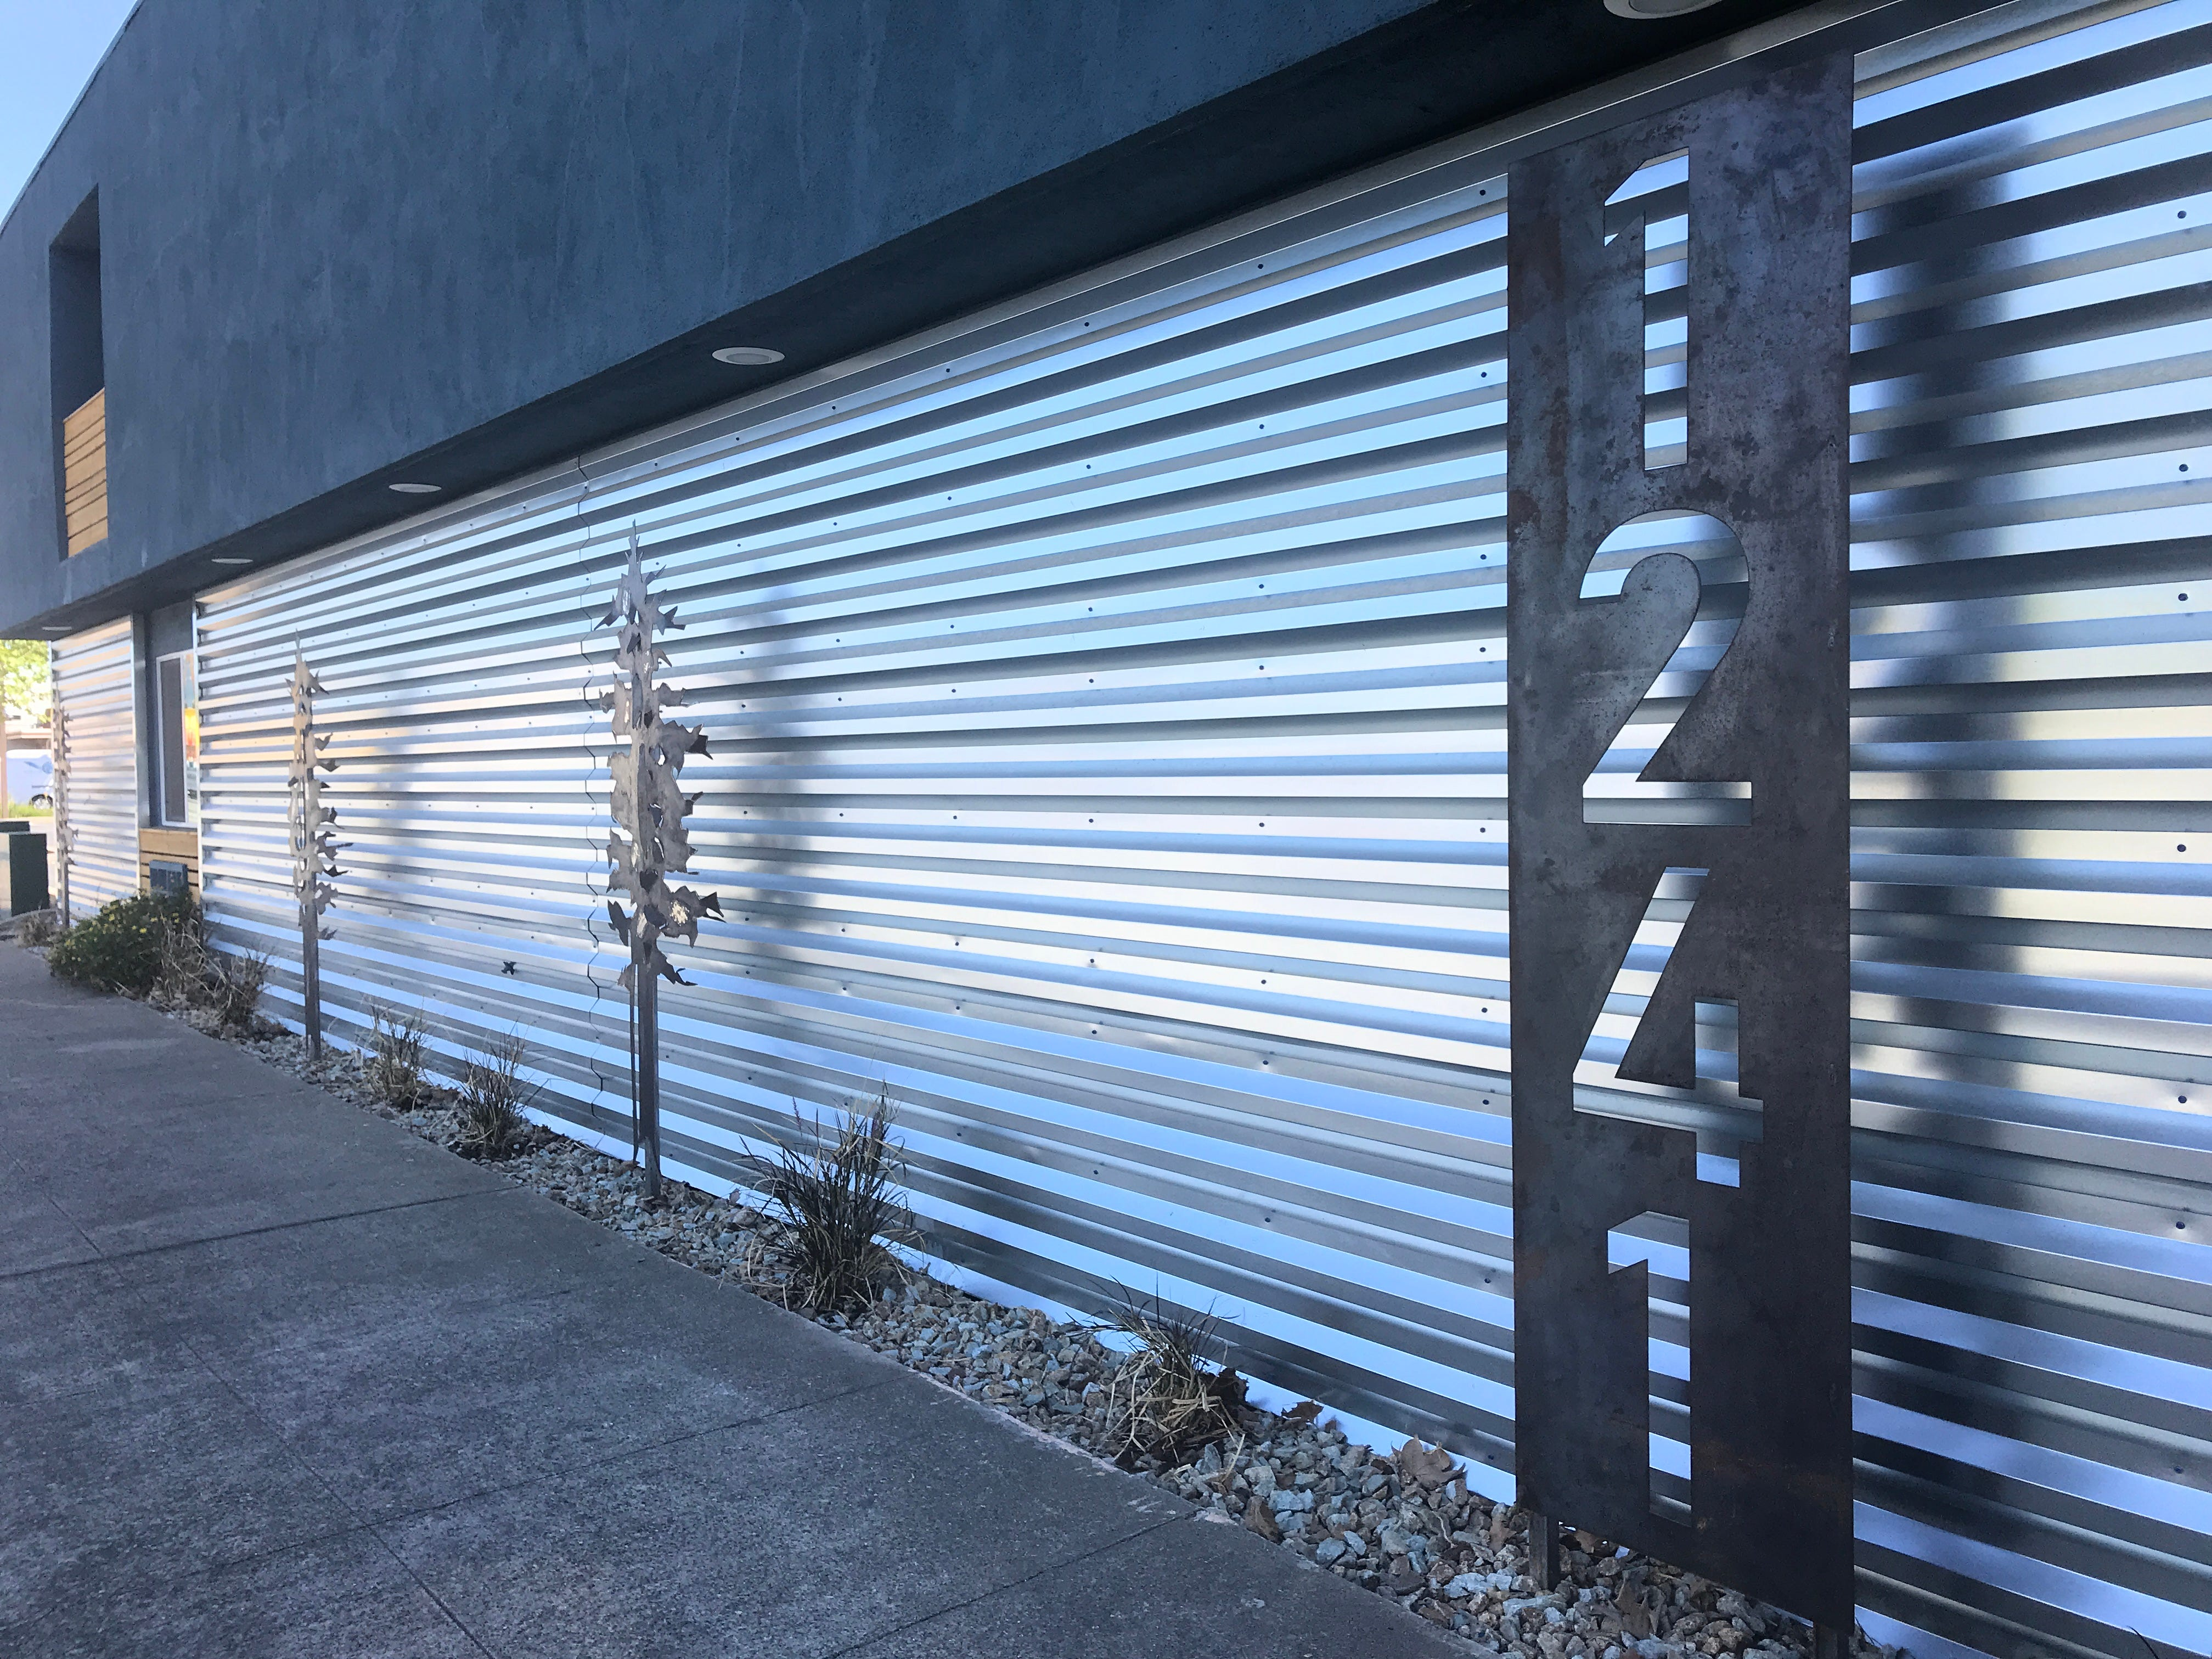 Metal siding now graces the hotel on the Market Street side. Russell Architecture of Redding did the design work.